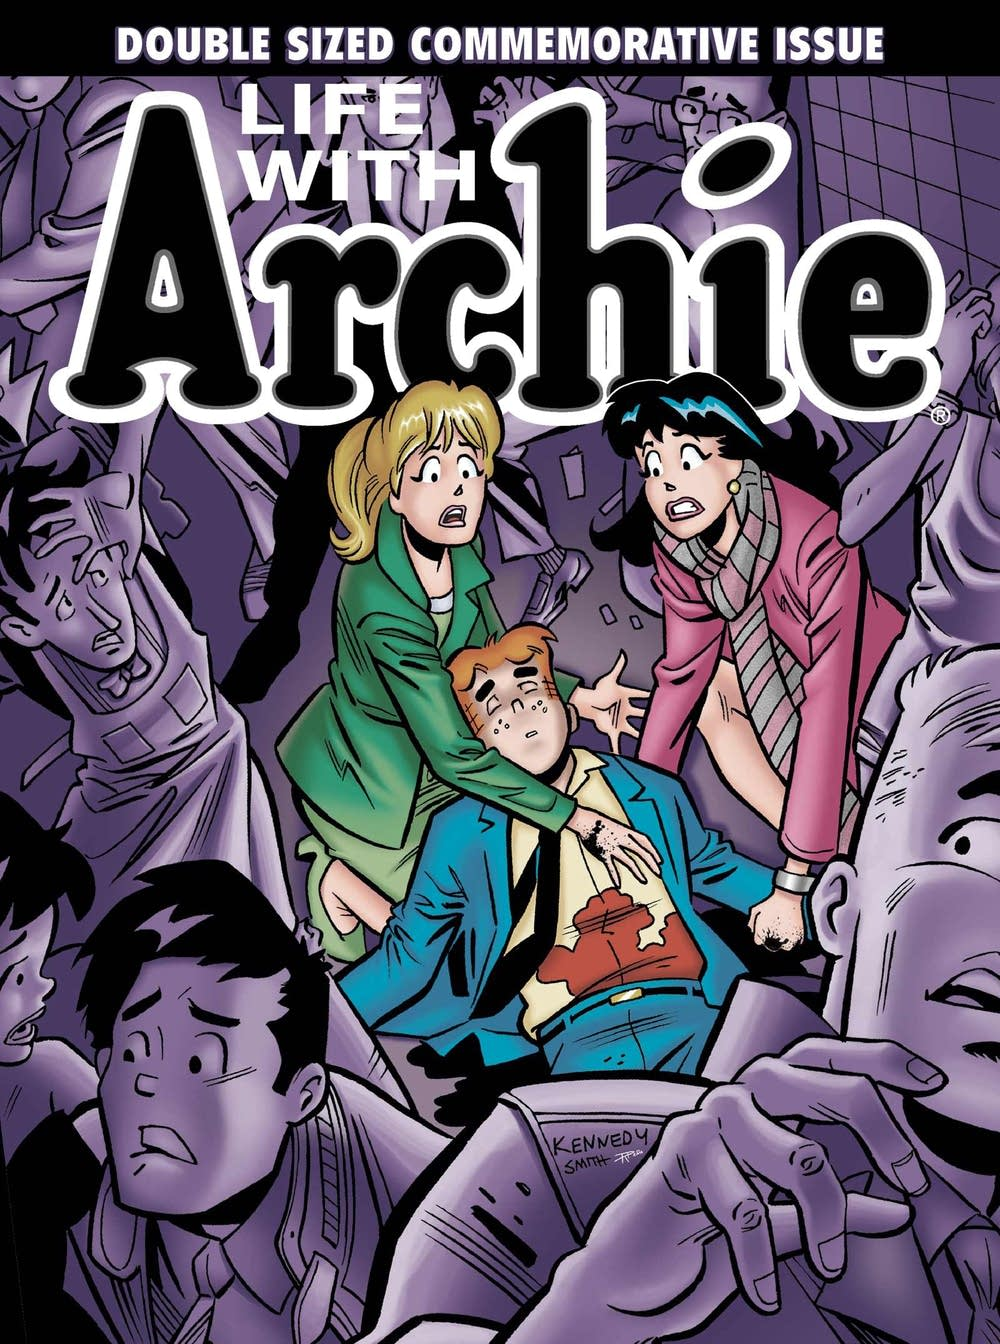 Archie dies taking a bullet for his best friend